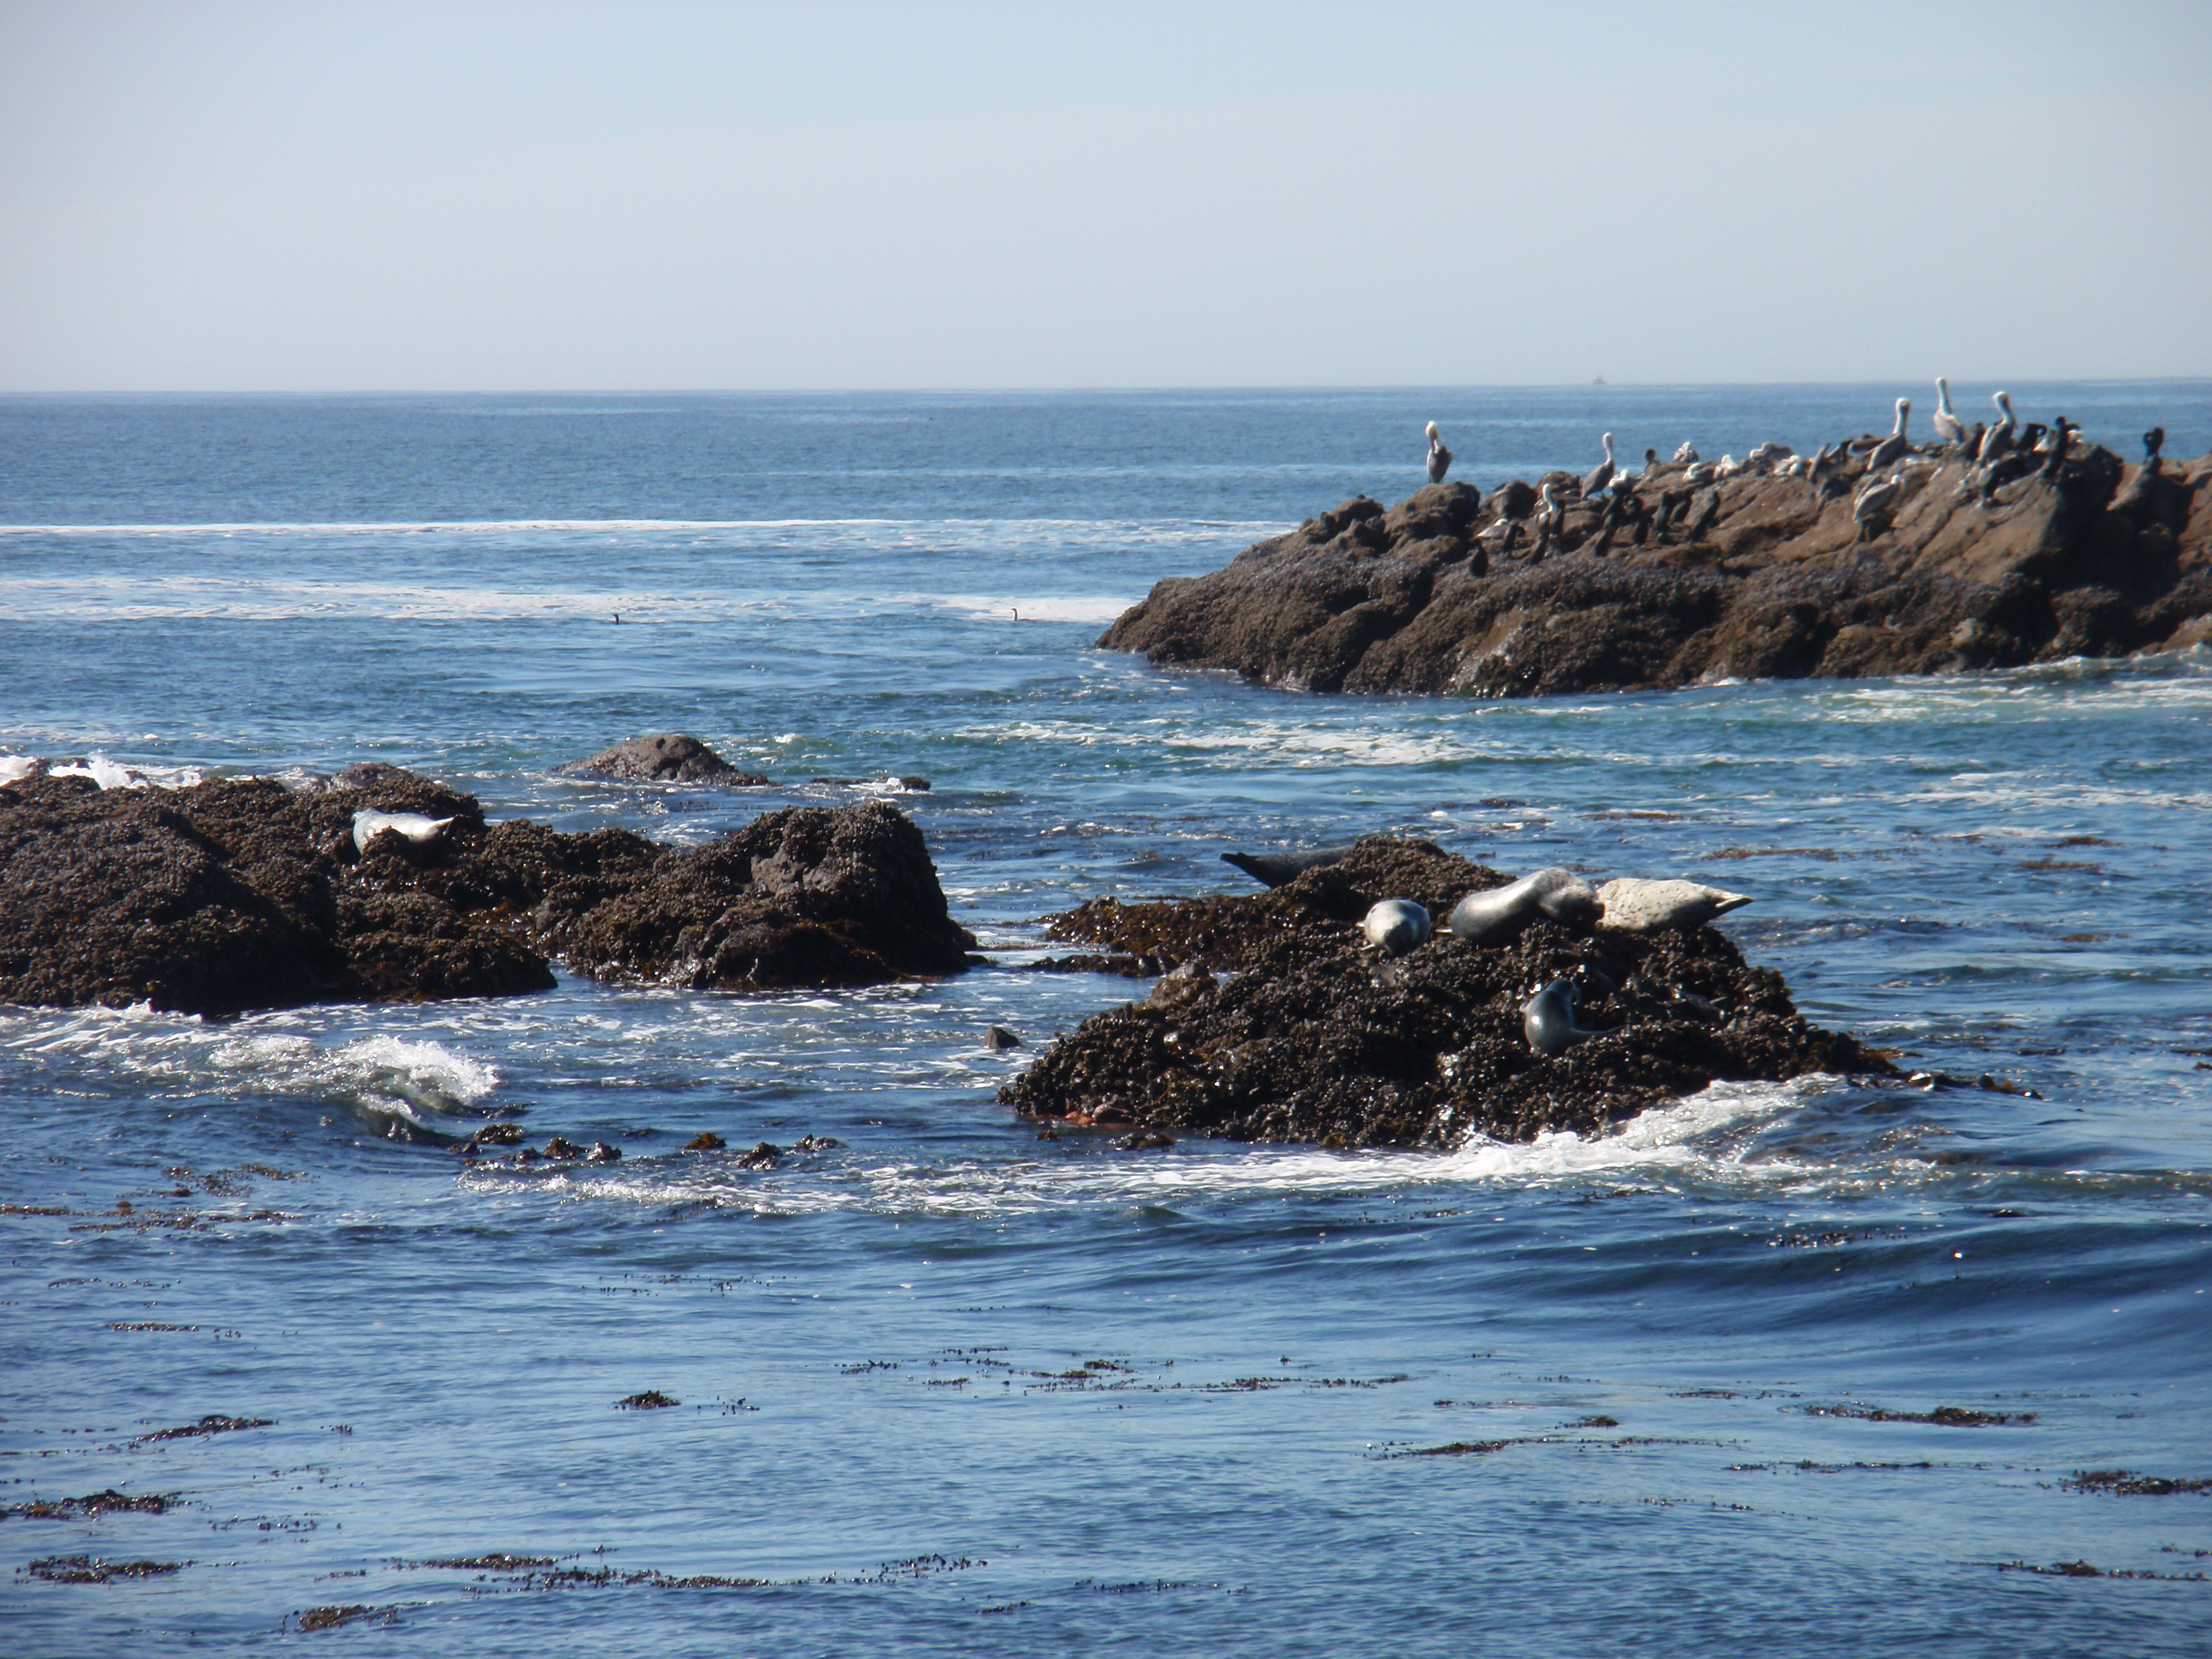 Pelicans & pinnipeds